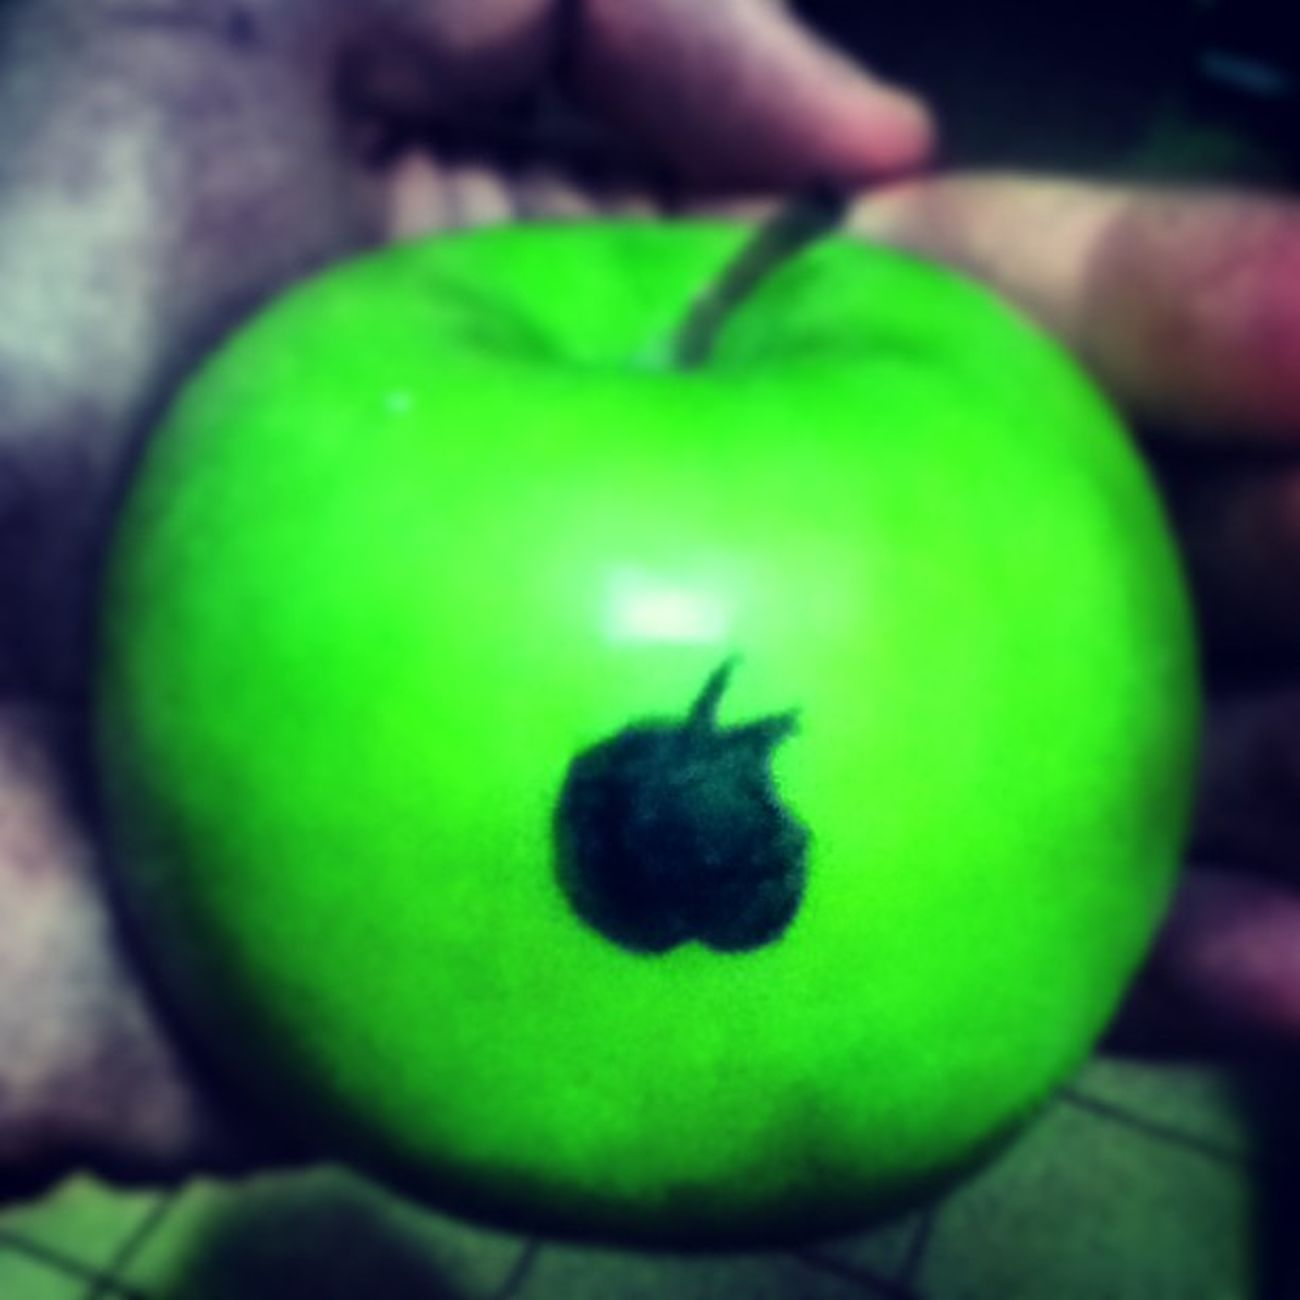 Épou :) Apple Má ça Quemerda Uhul green